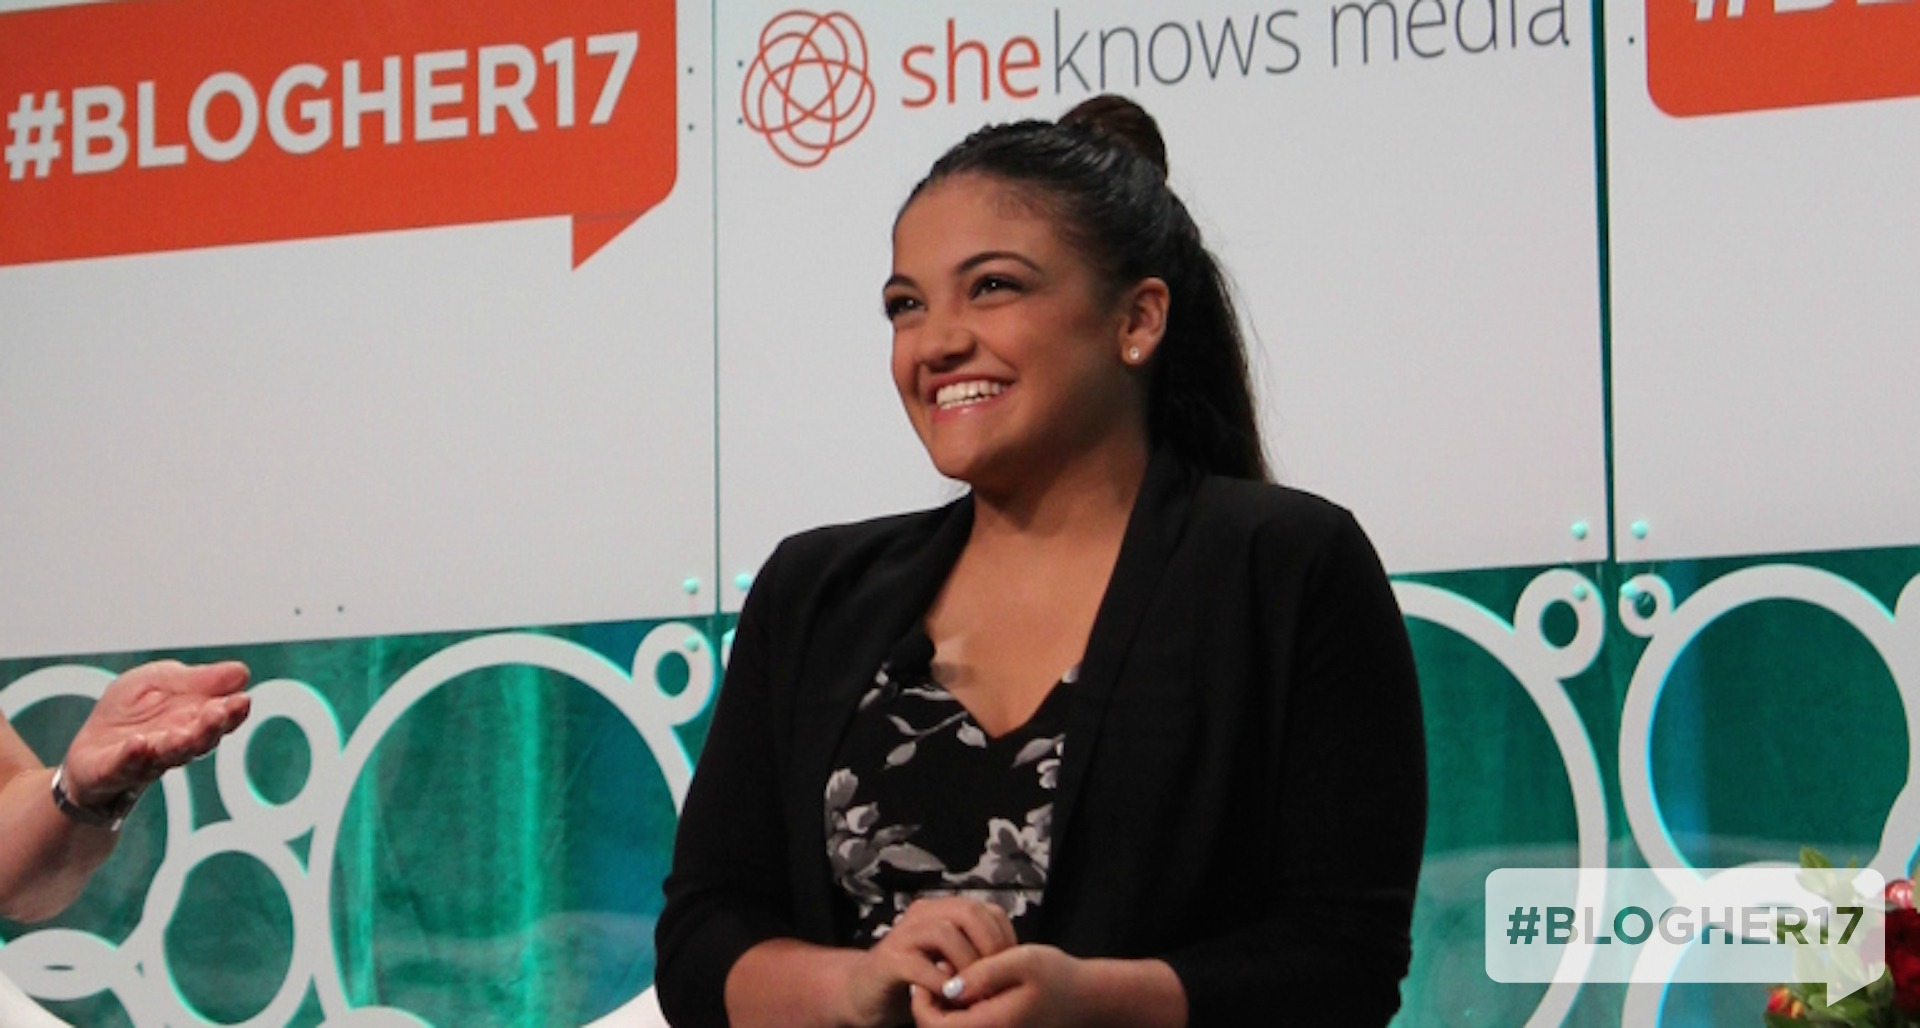 Laurie Hernandez at BlogHer17